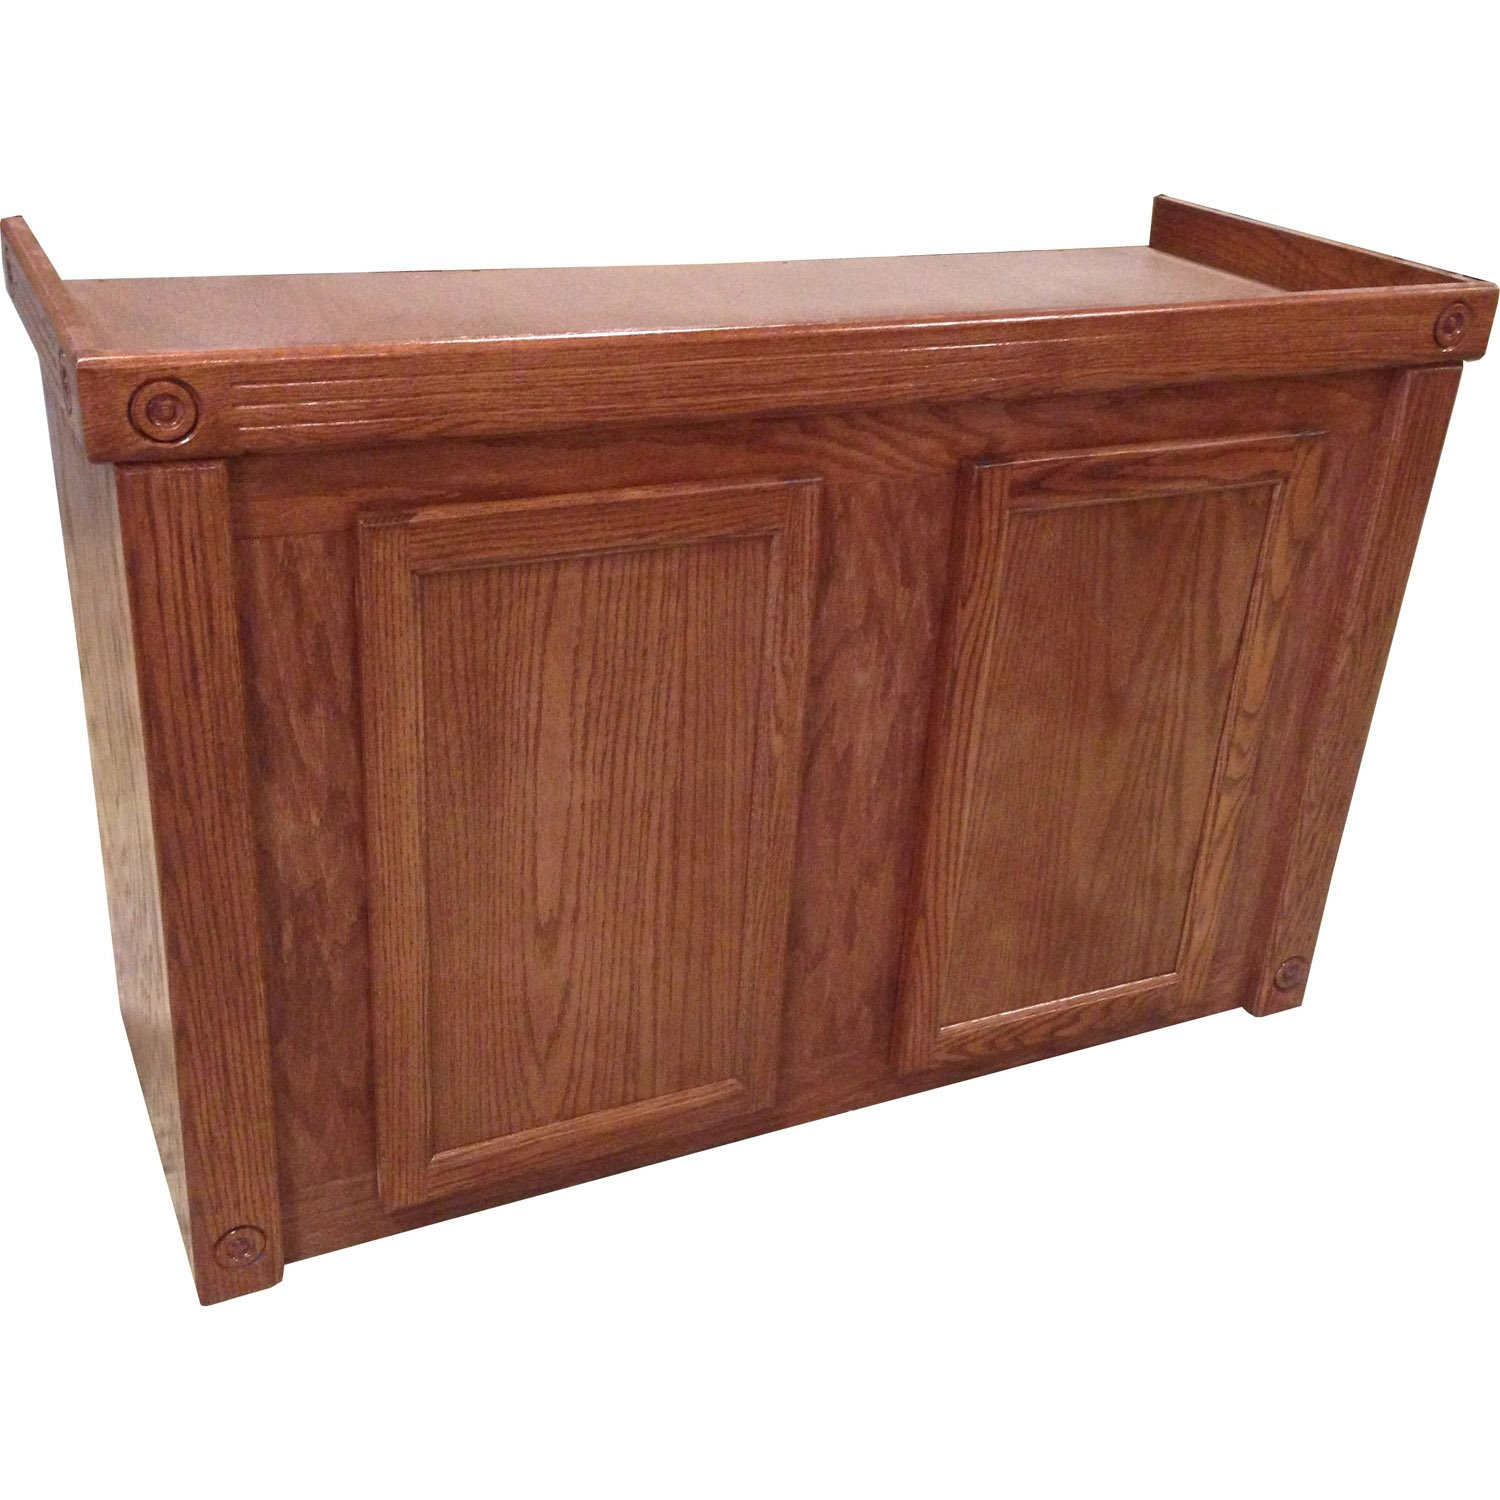 Ru0026J Enterprises 48X18 Cherry Oak Empire Series 75/90/110 Cabinet | Petco